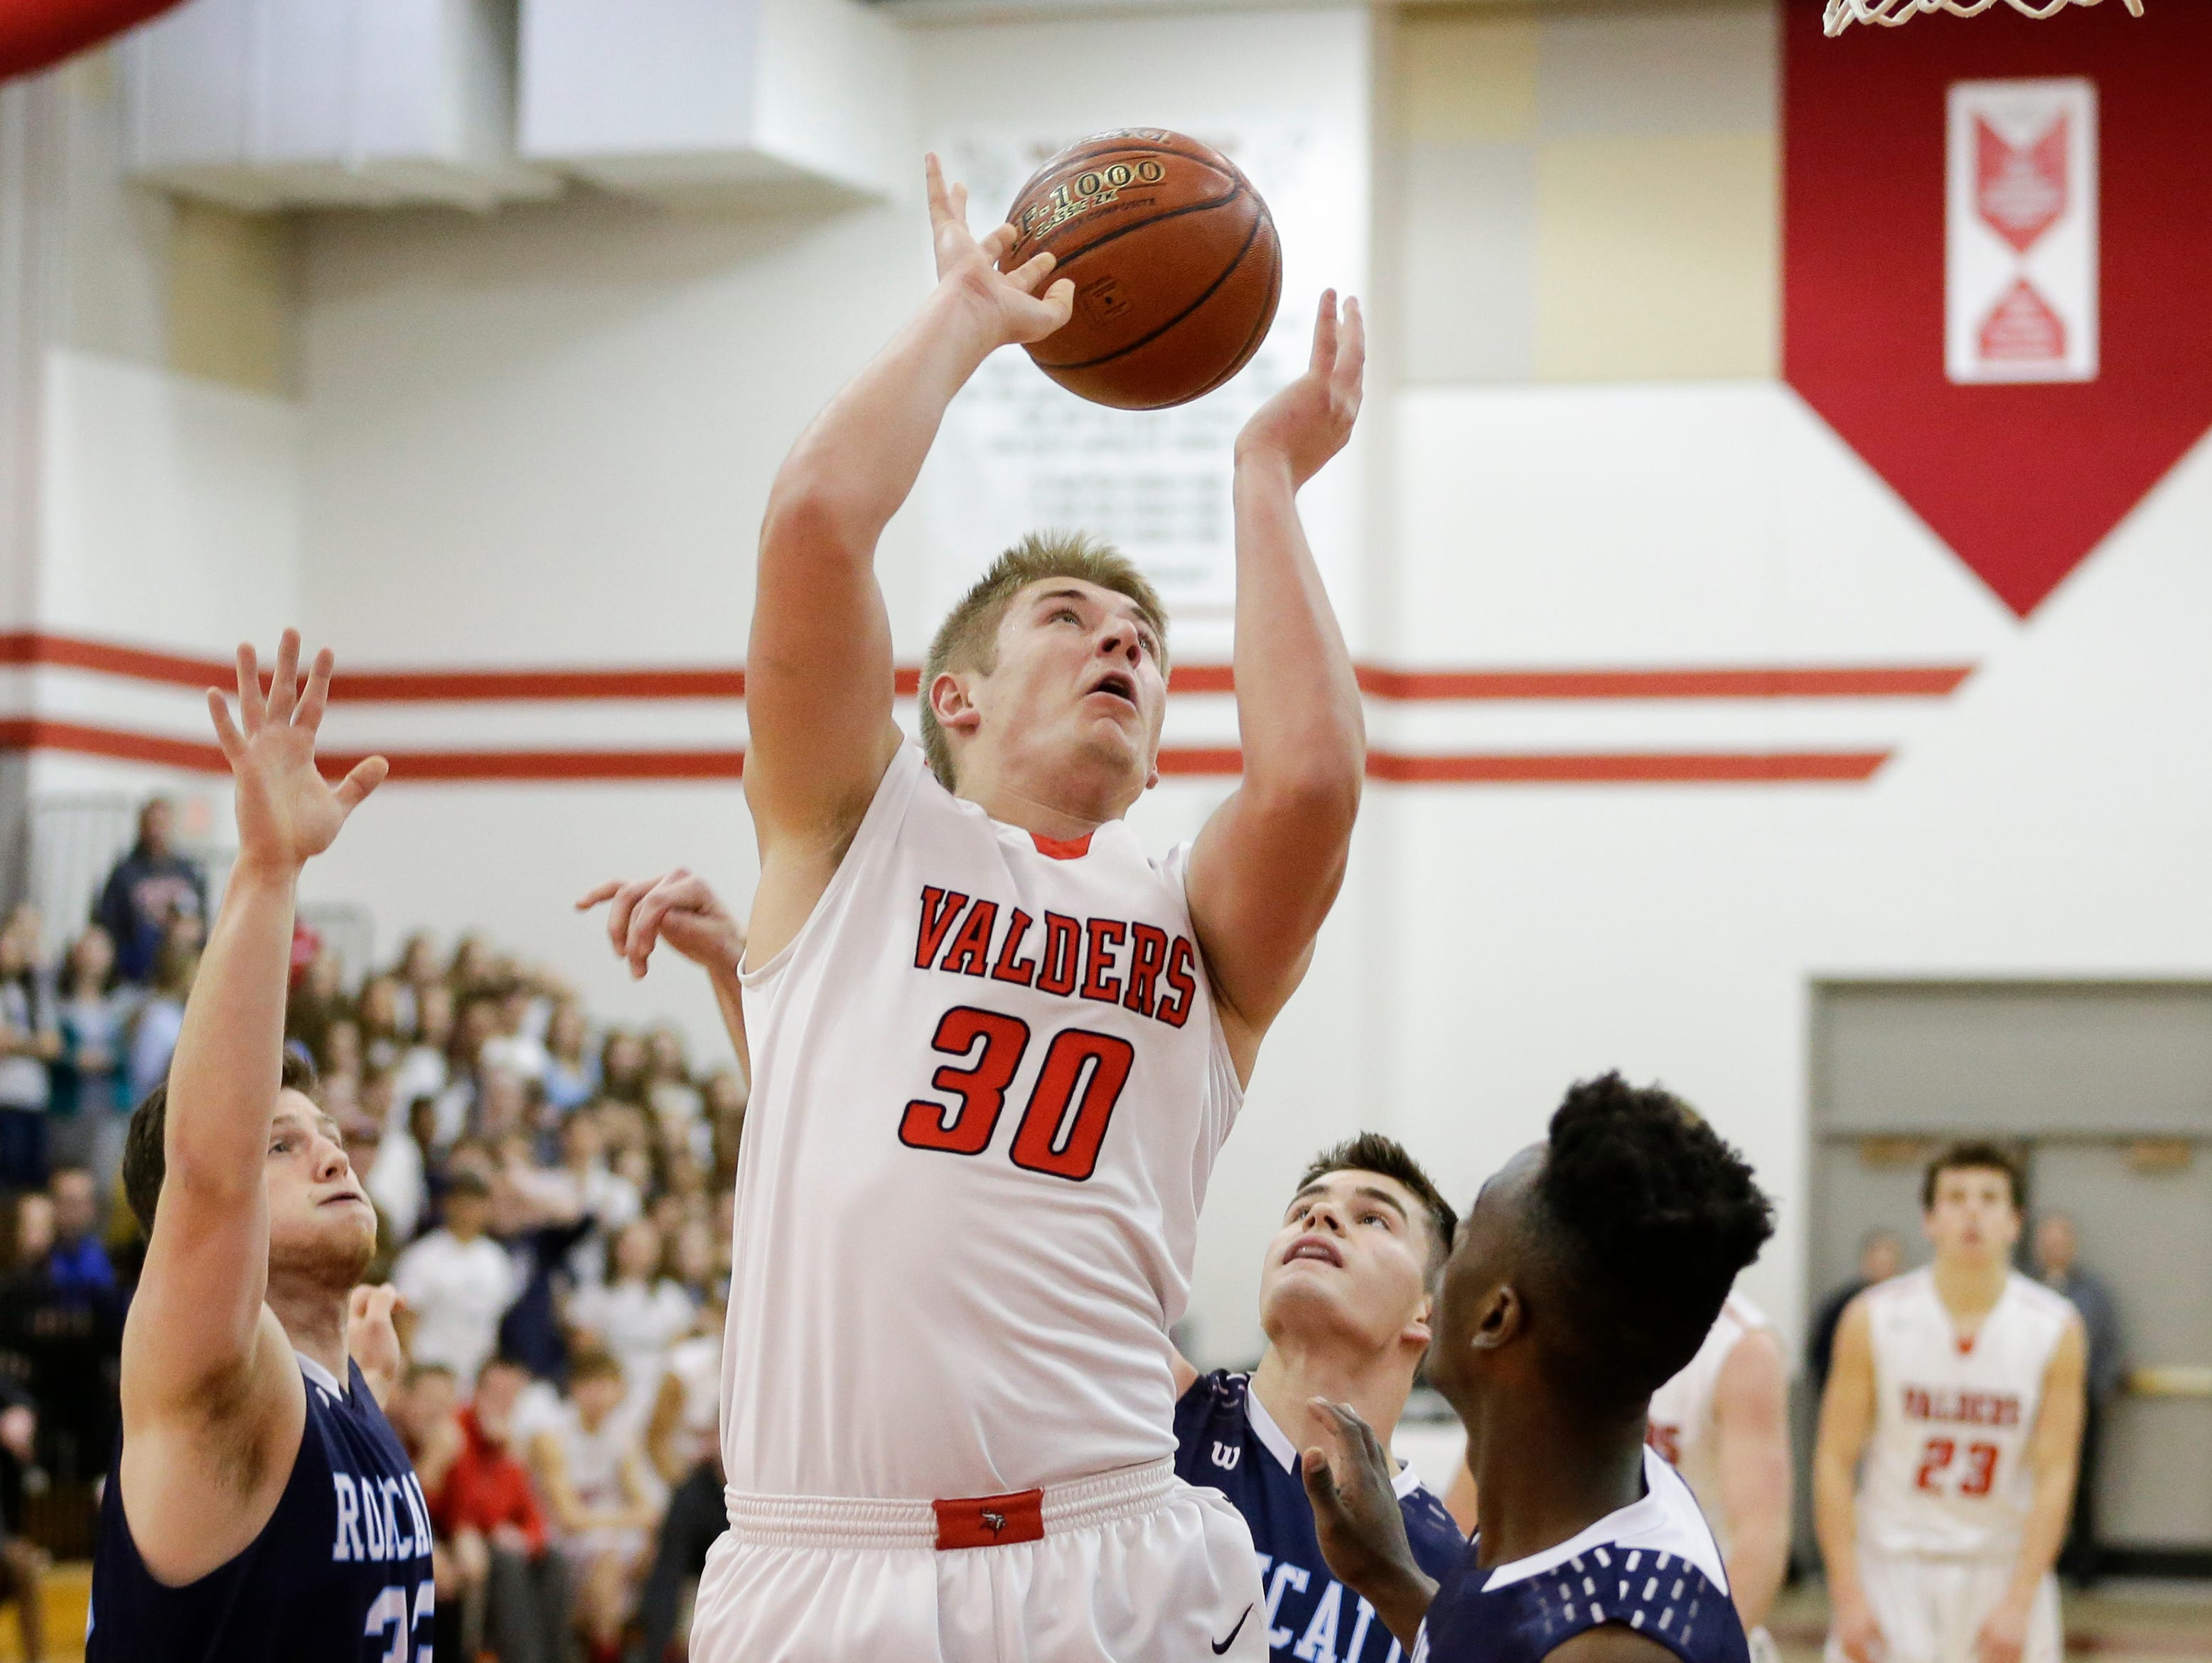 Valders' Zack Weyker puts up a shot against Roncalli during an Eastern Wisconsin Conference game at Valders High School Thursday, January 3, 2019, in Valders, Wis. Joshua Clark/USA TODAY NETWORK-Wisconsin